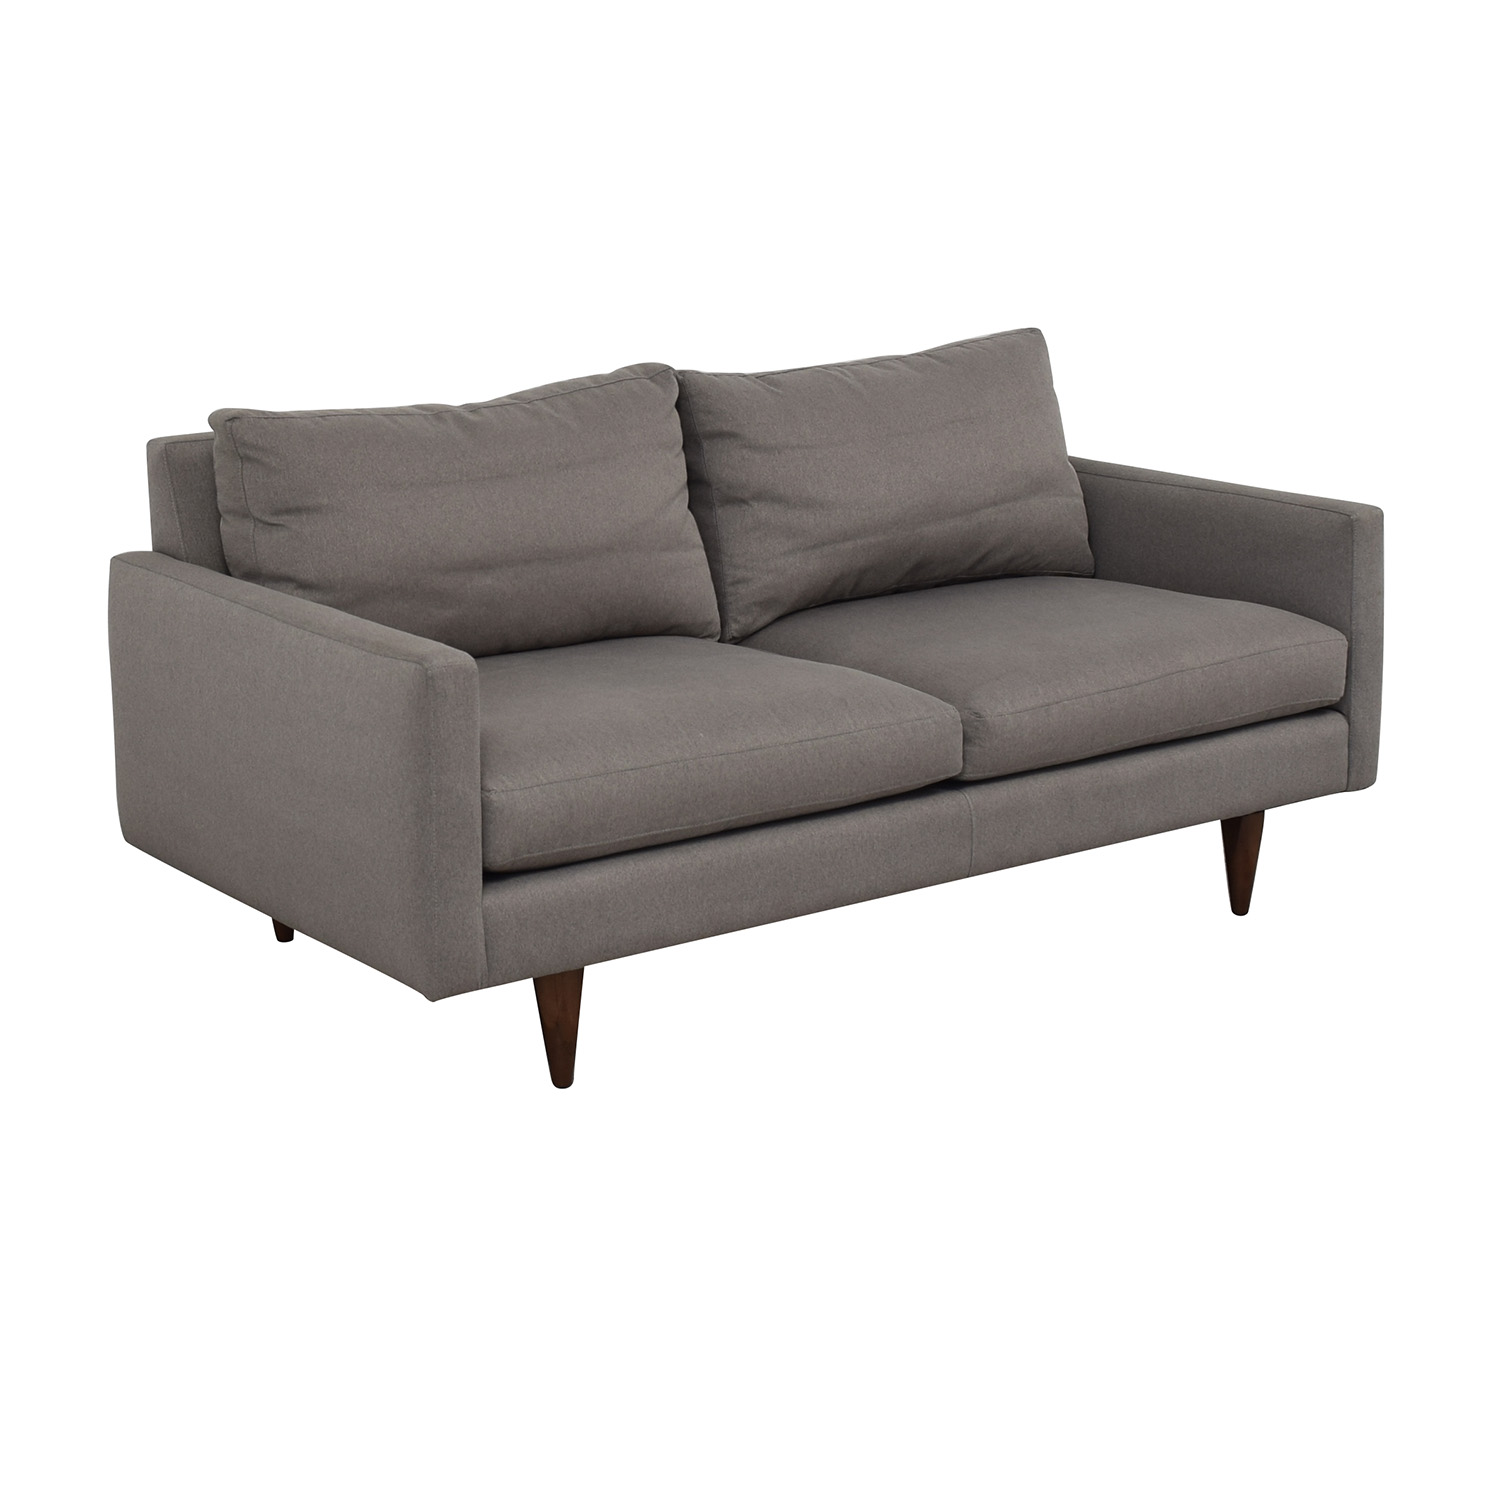 shop Room & Board Jasper Loveseat Room & Board Sofas